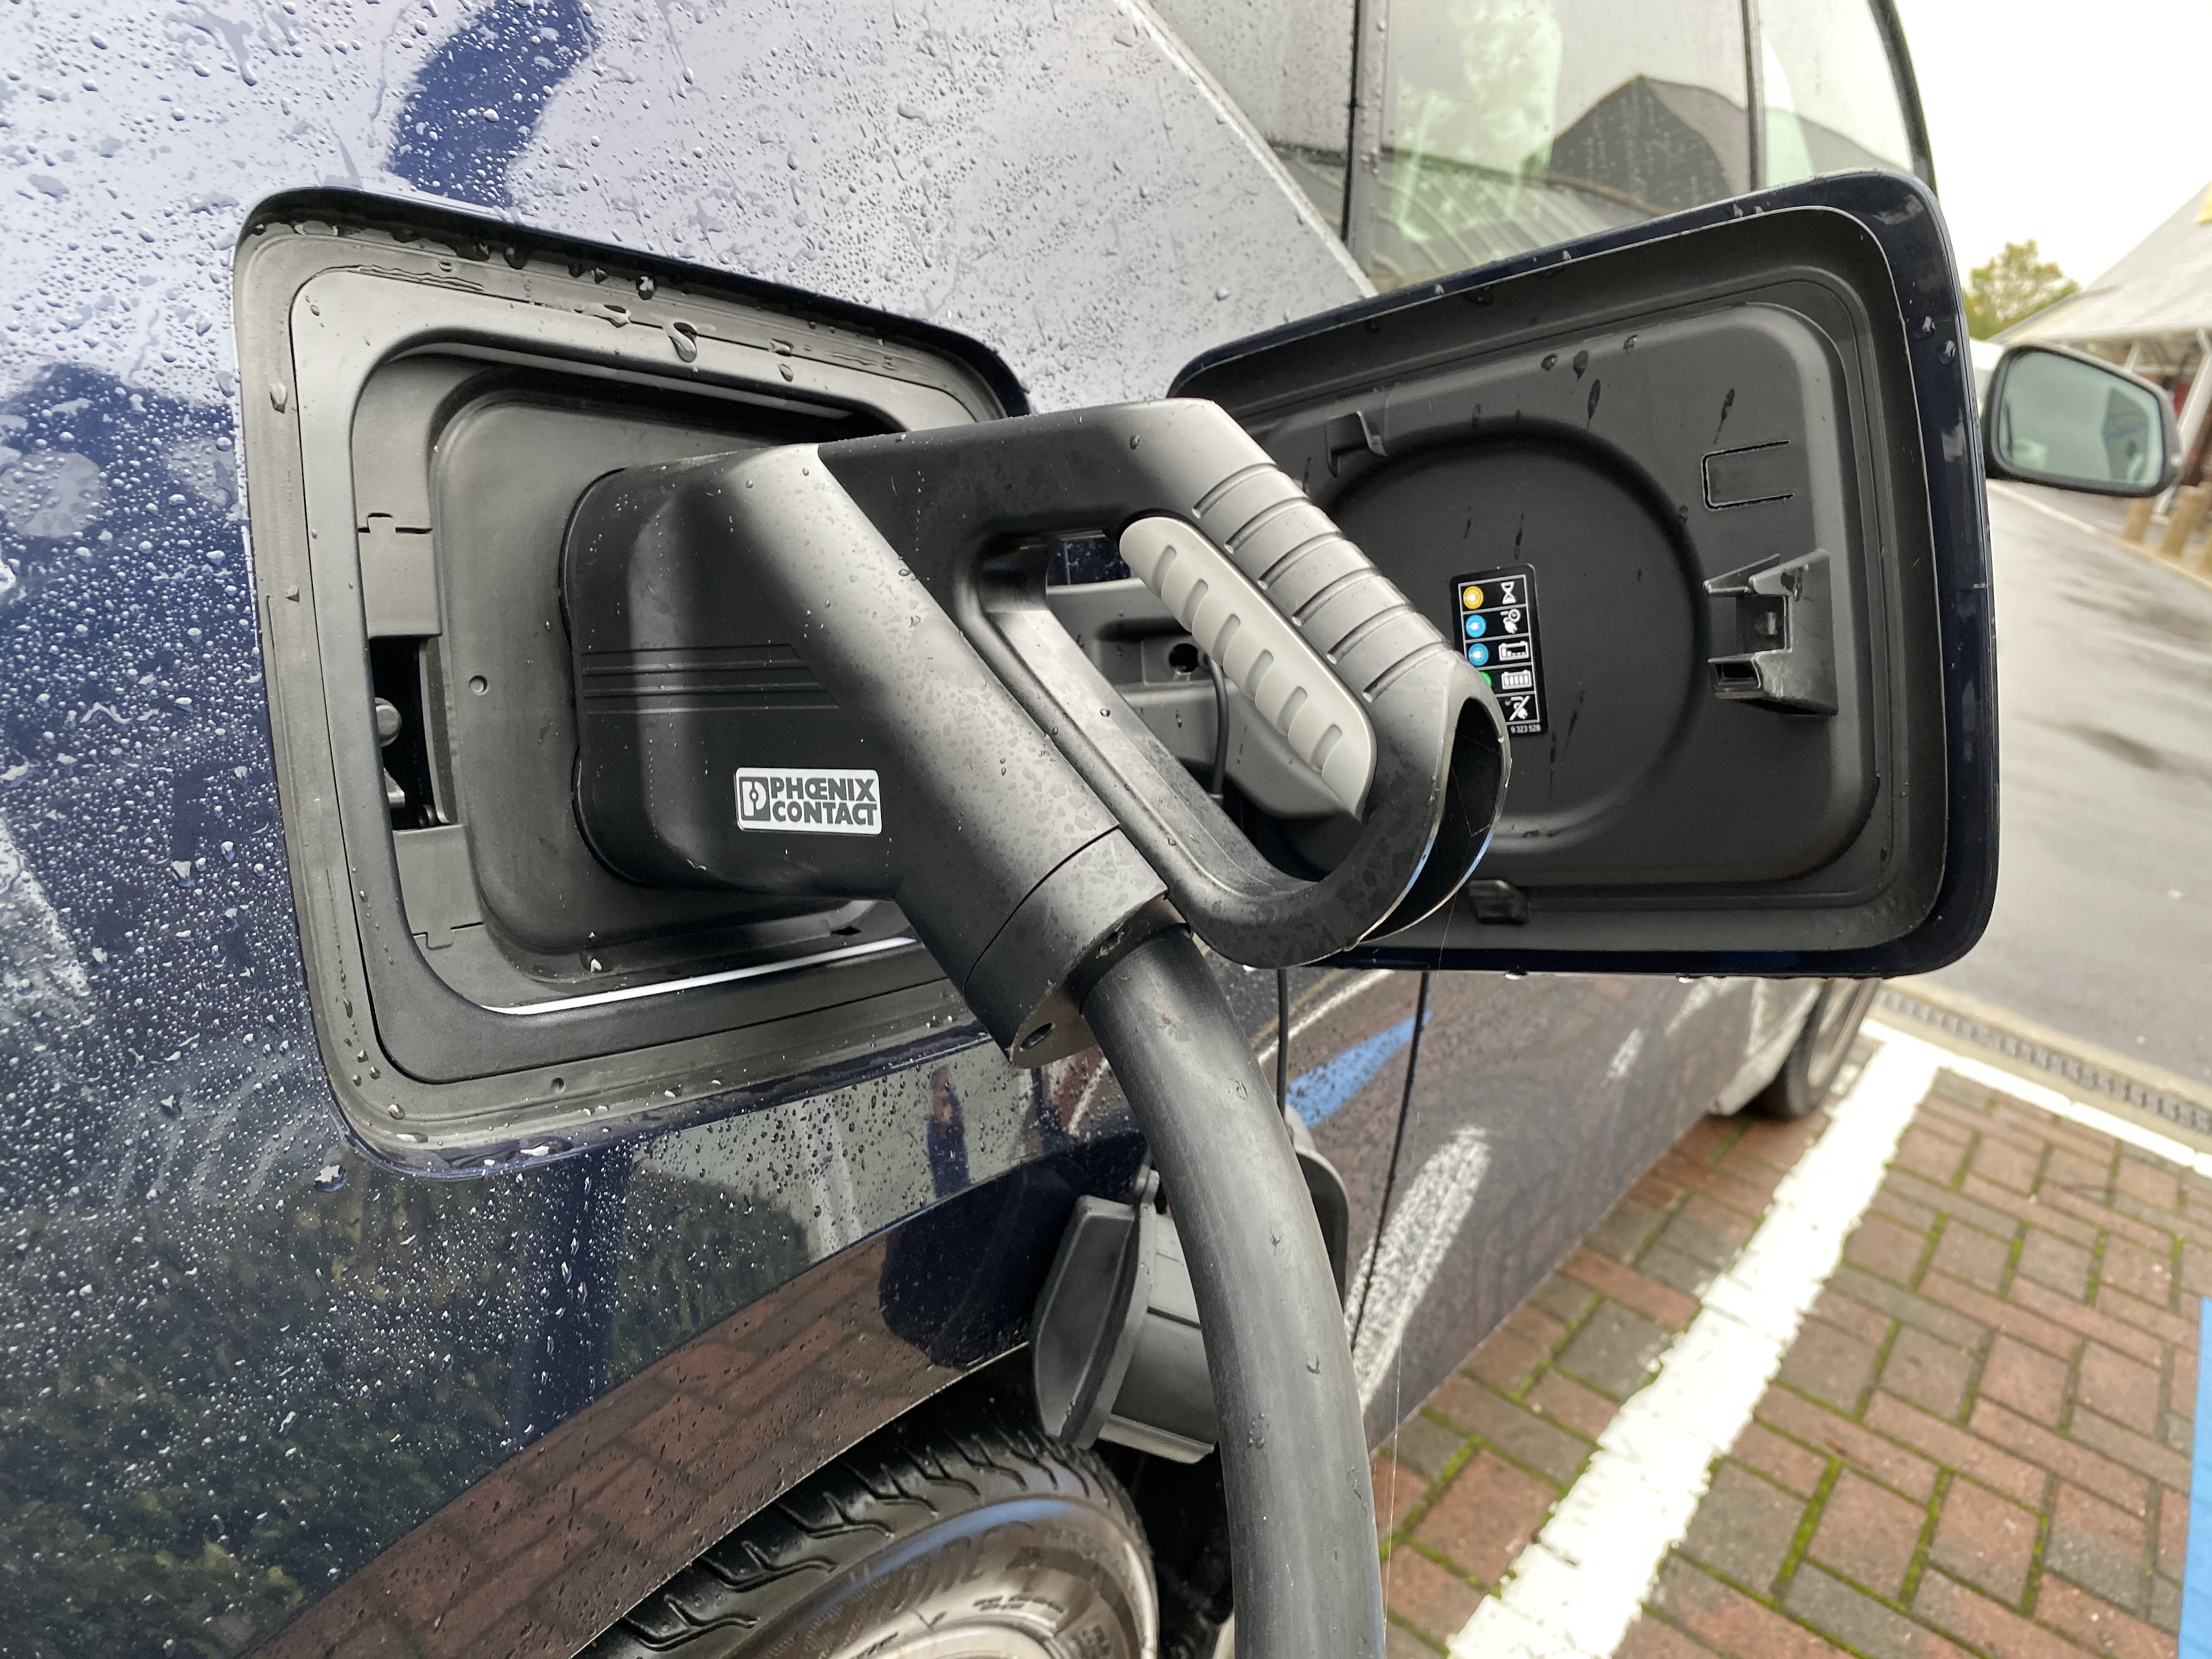 Charging the car is a simple process